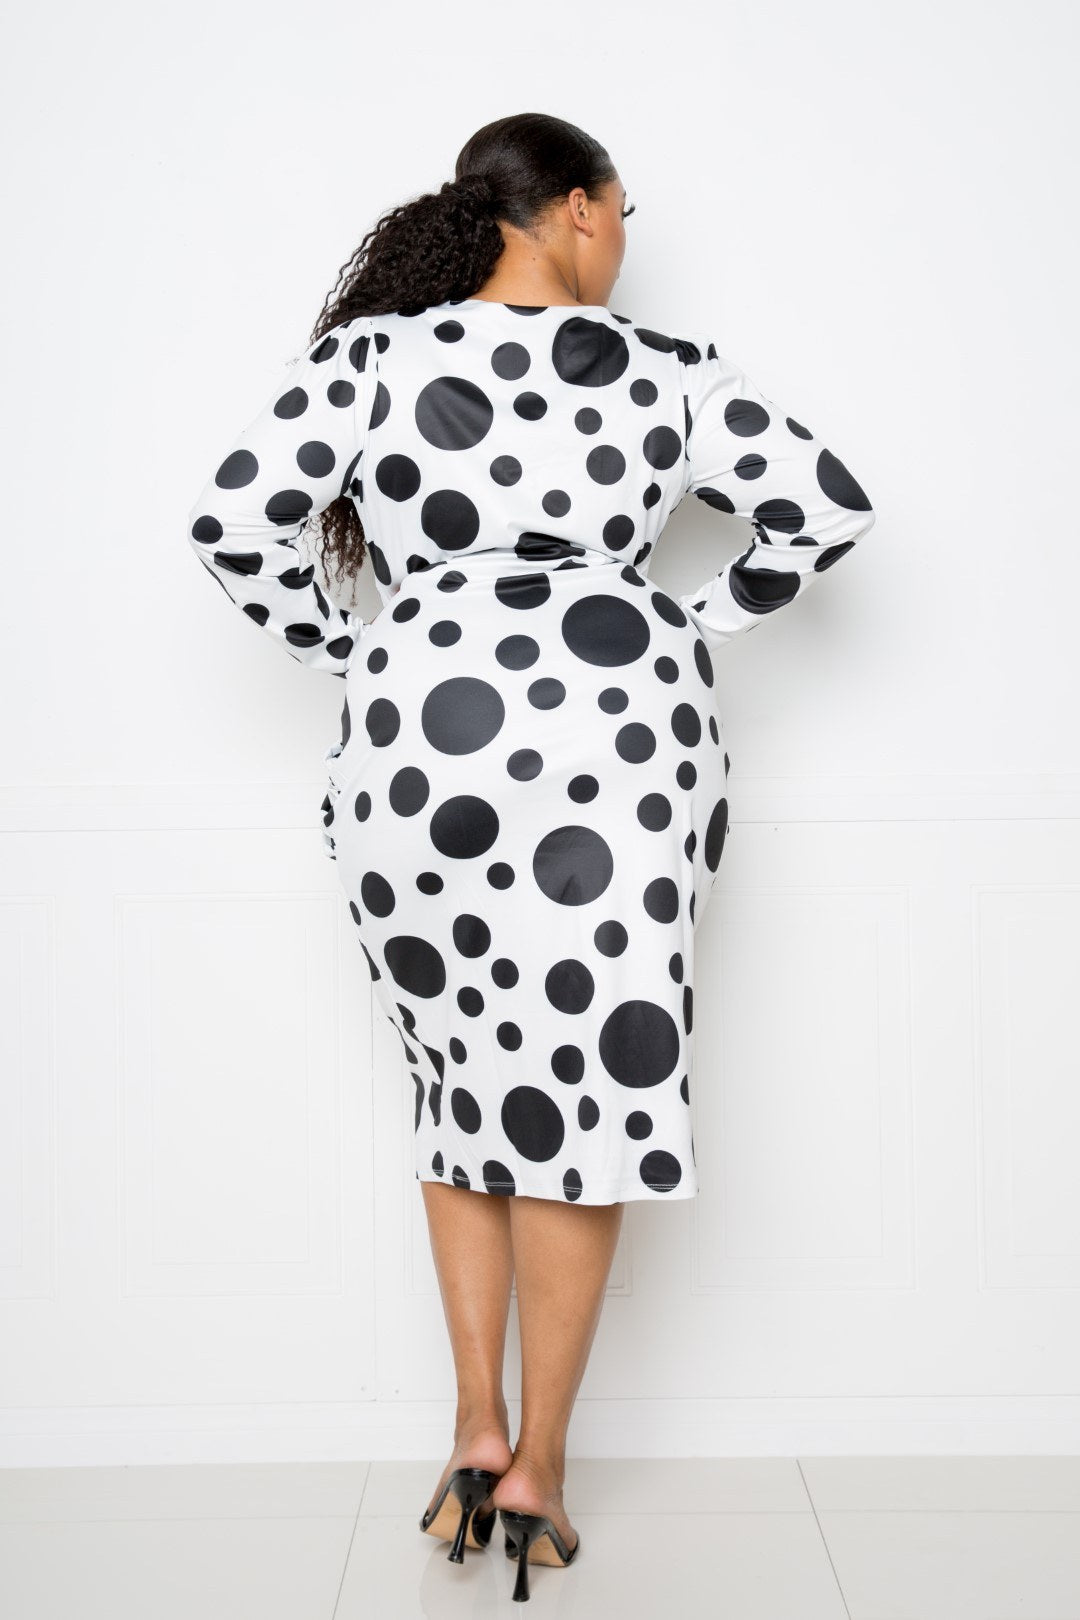 Print Dress - Polka Dot Drop Waist Ruched Midi Dress - Local Scenes